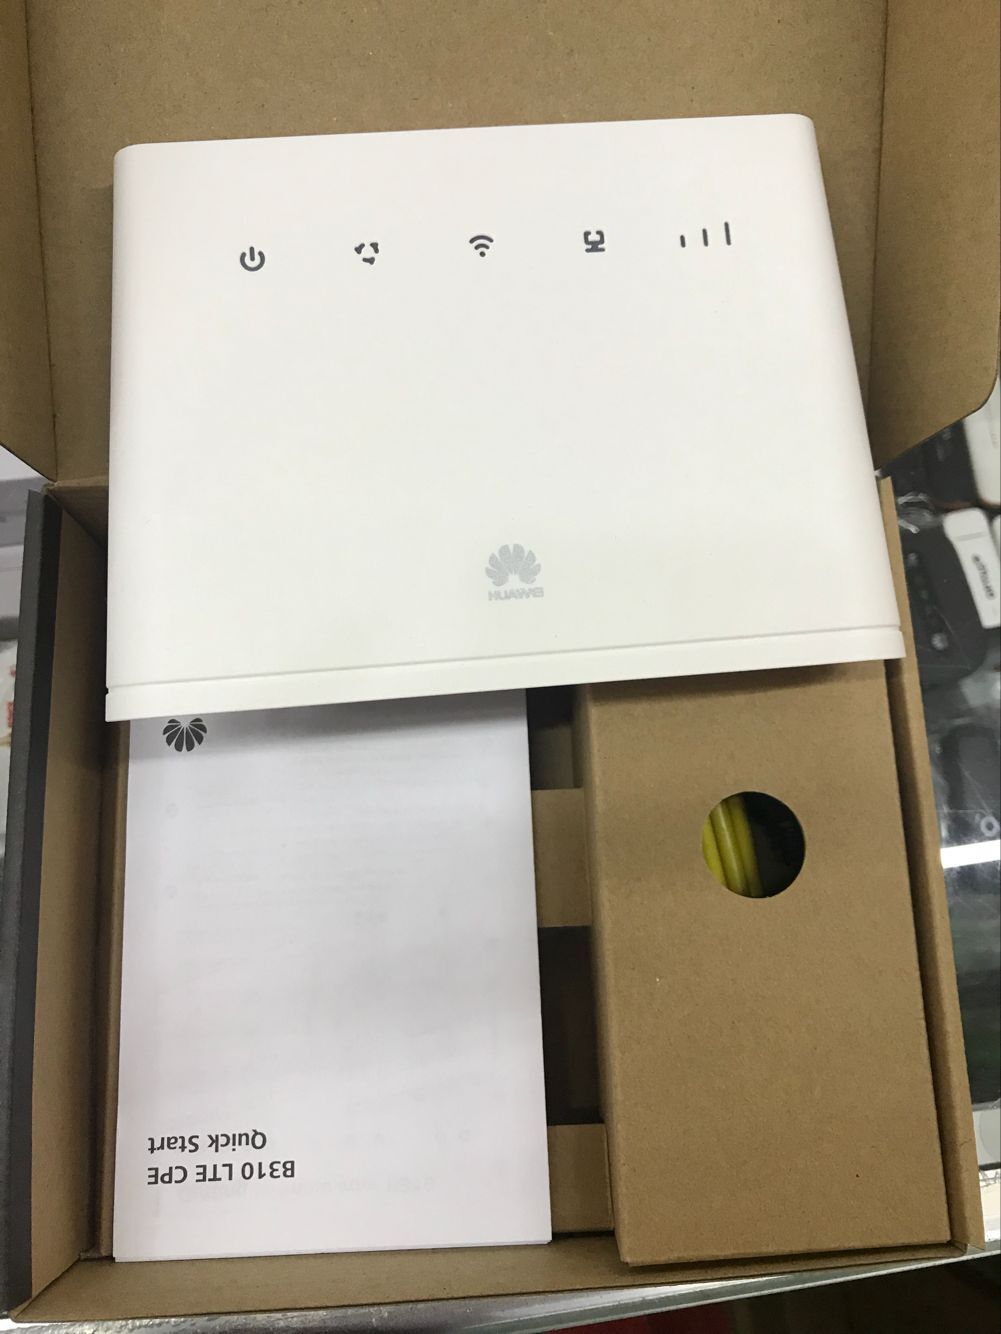 Unlocked New Arrival Huawei B310 B310s 518 150mbps 4g Lte Cpe Wifi Modem Is A With Category 4 Technology Could Achieve Connection Of Up To Through Its Gigabit Ethernet Port